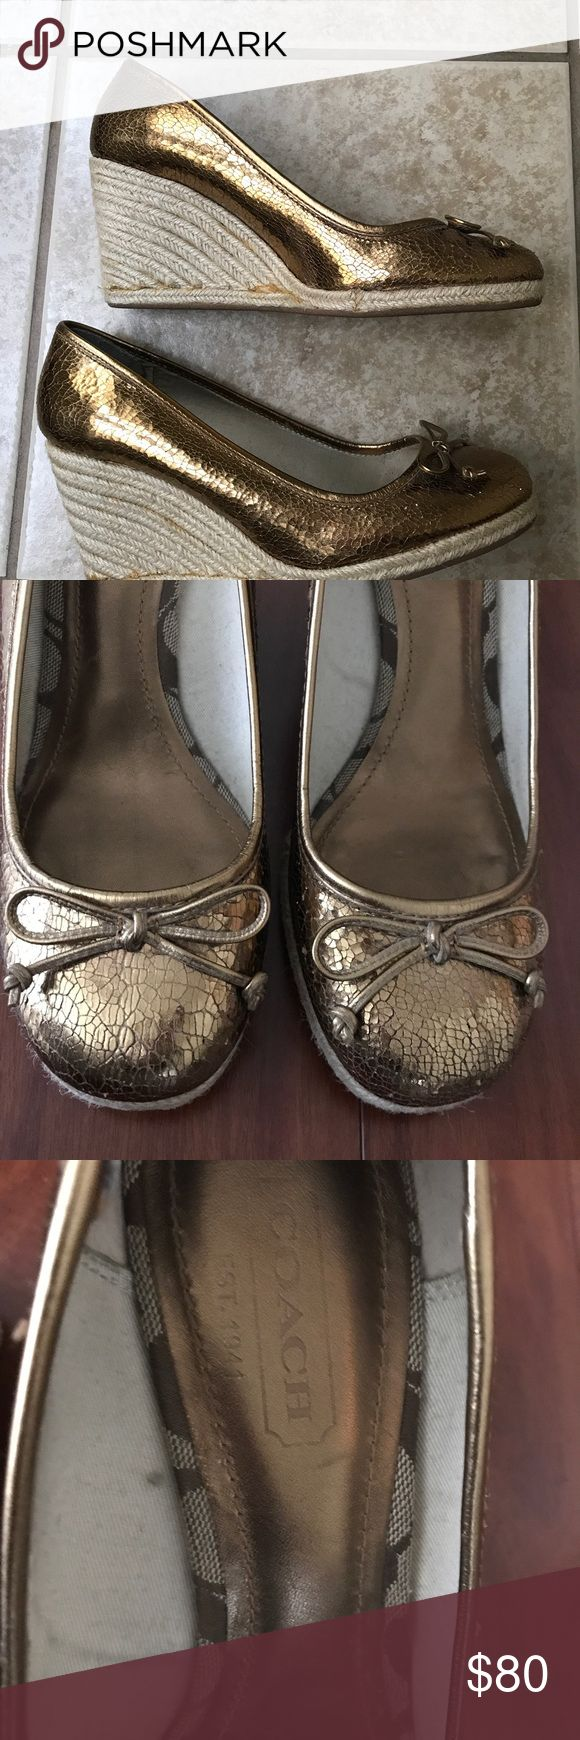 Coach Gold Metallic Espadrille Wedge Sz 9.5 Beautiful Coach Espadrille with bows in the front. Very comfortable. I put an anti slip in the back of the shoes to keep from slipping off. You can peel them off if you do not need them. Coach Shoes Espadrilles